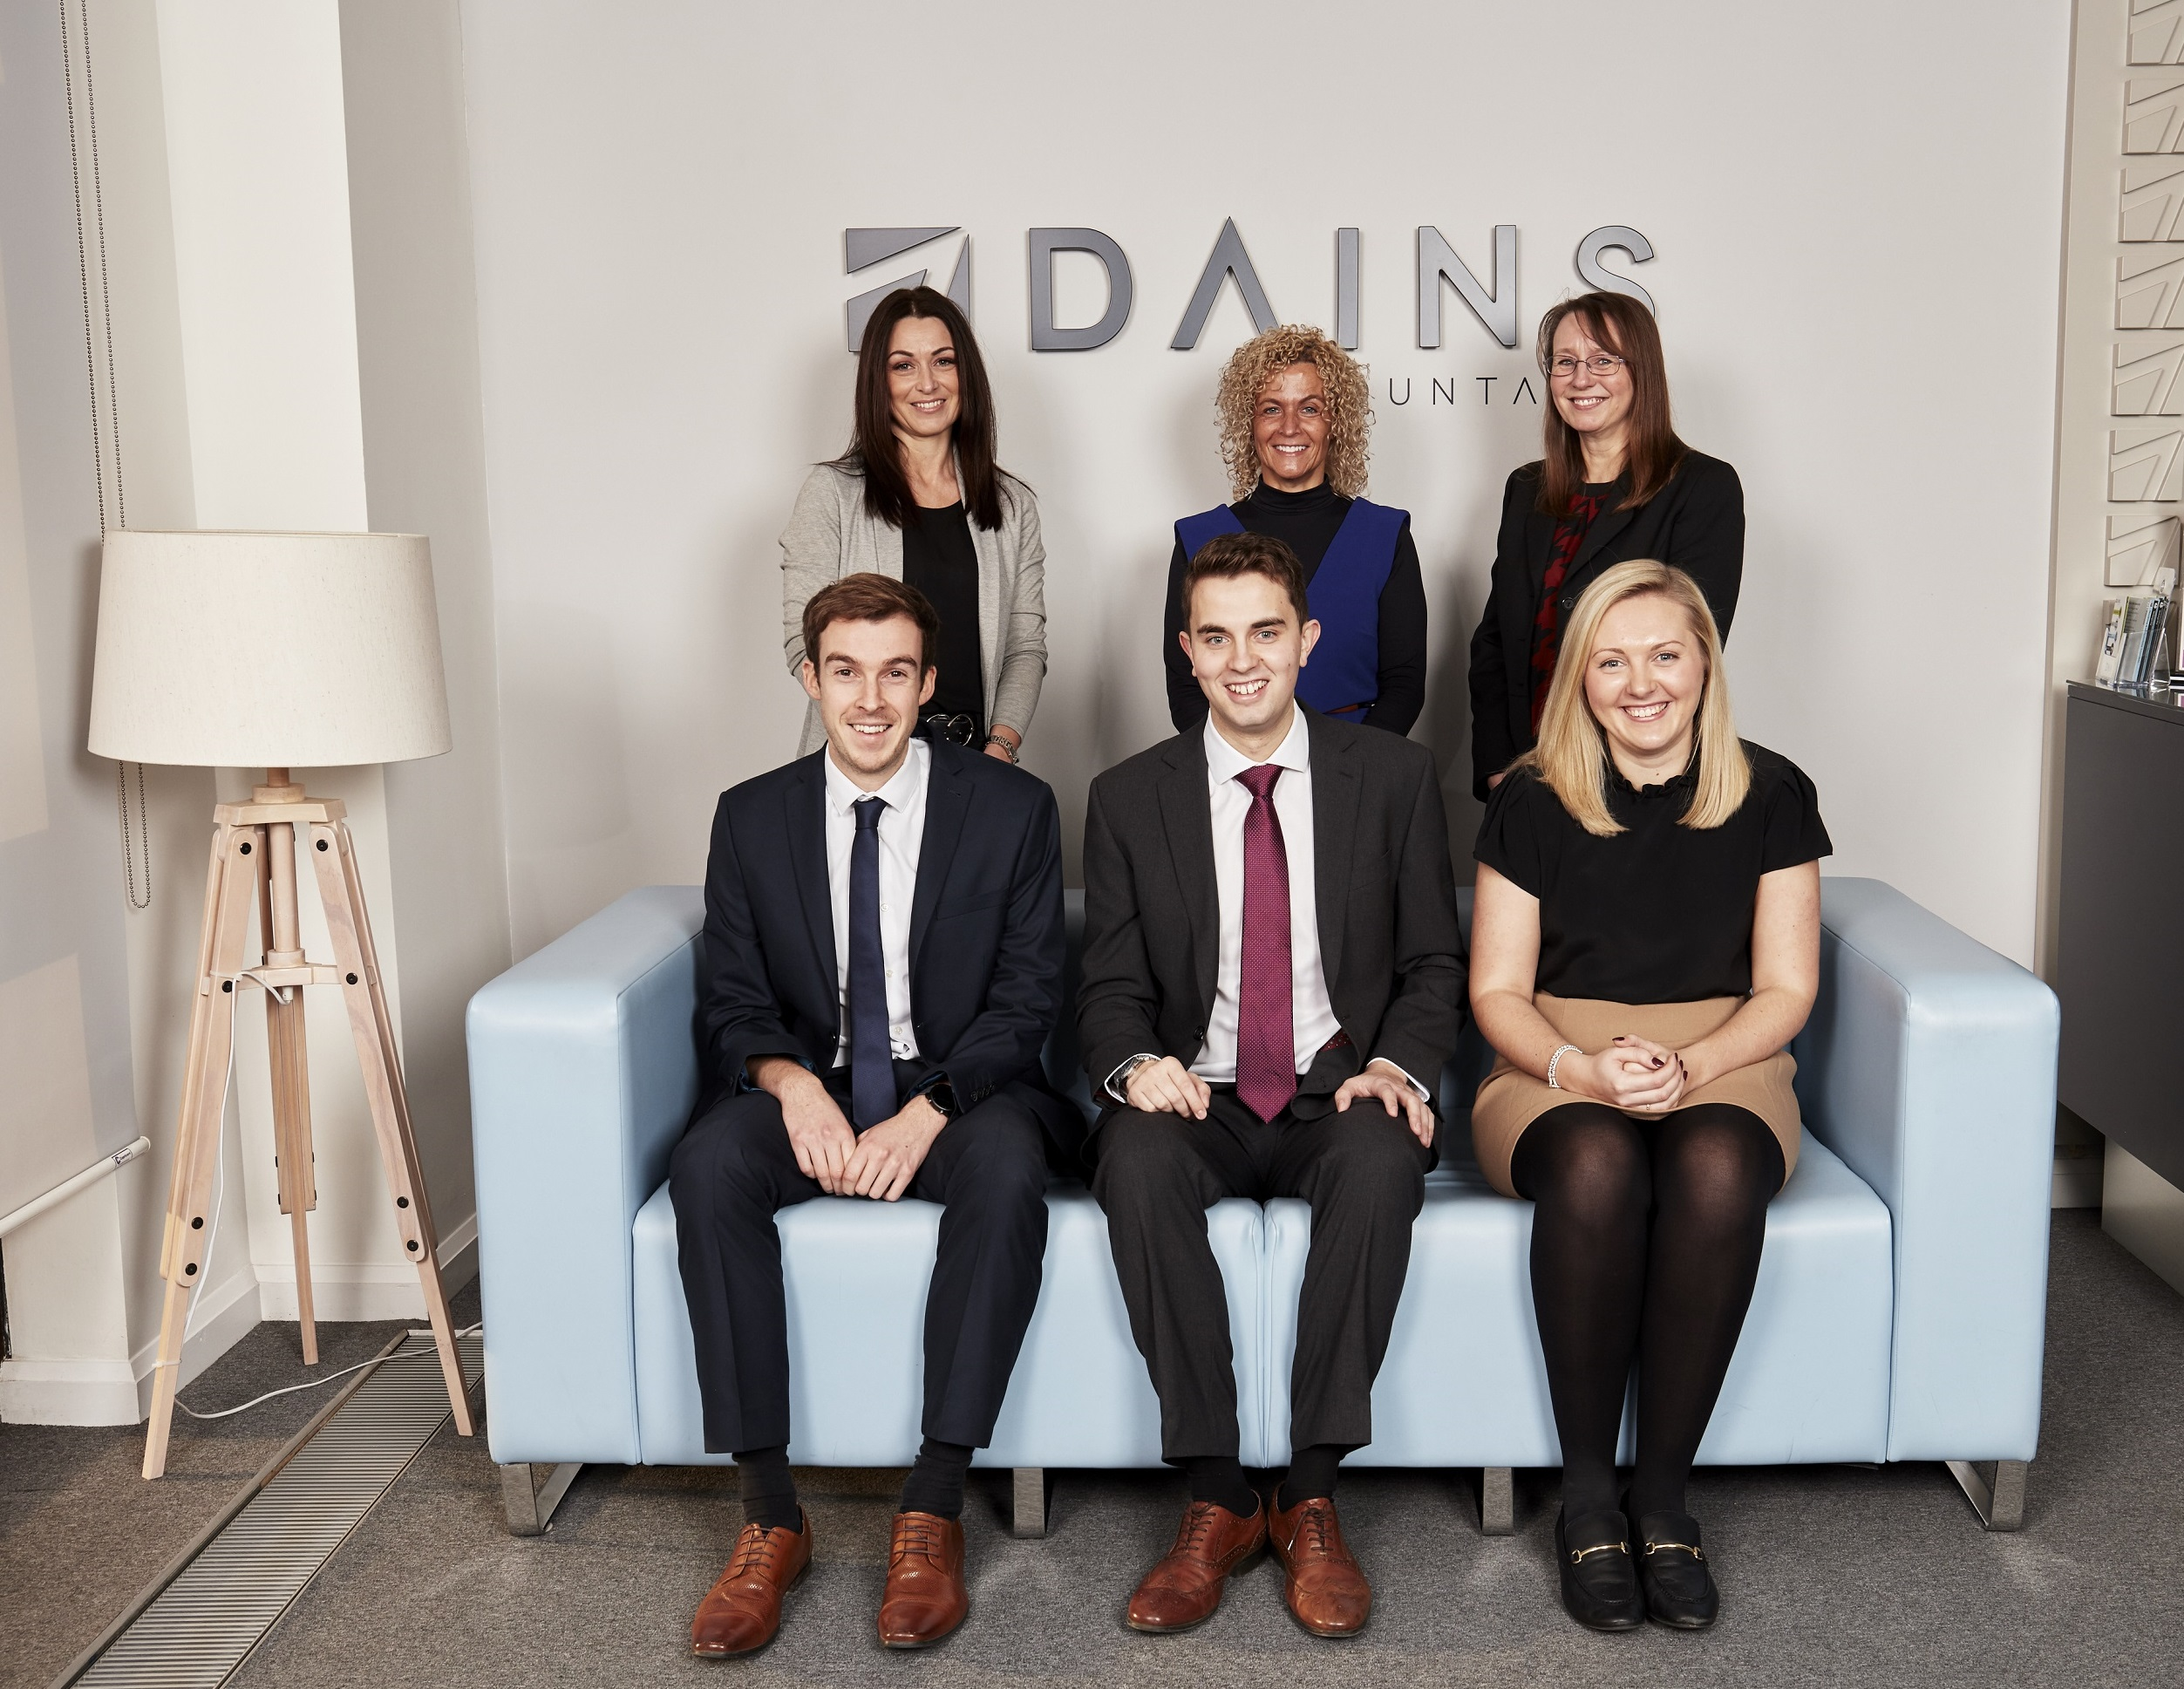 Staff have achieved new qualification to enhance their roles at Dains.